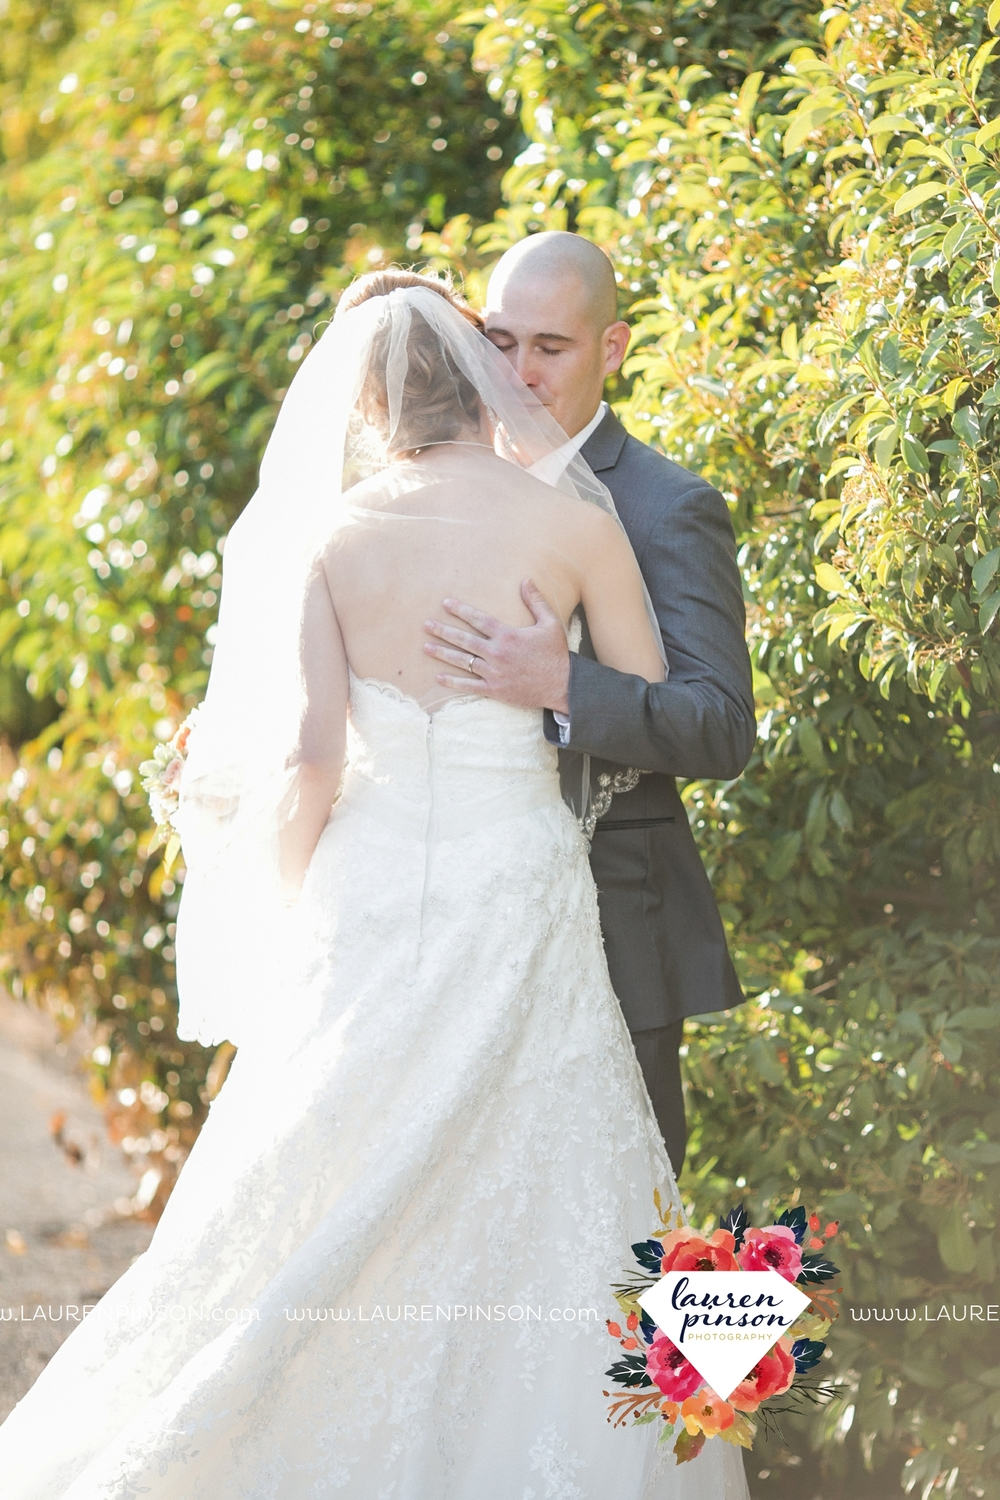 kemp-center-for-the-arts-wichita-falls-texas-wedding-photographer-fall-wedding-pumpkins-162.jpg